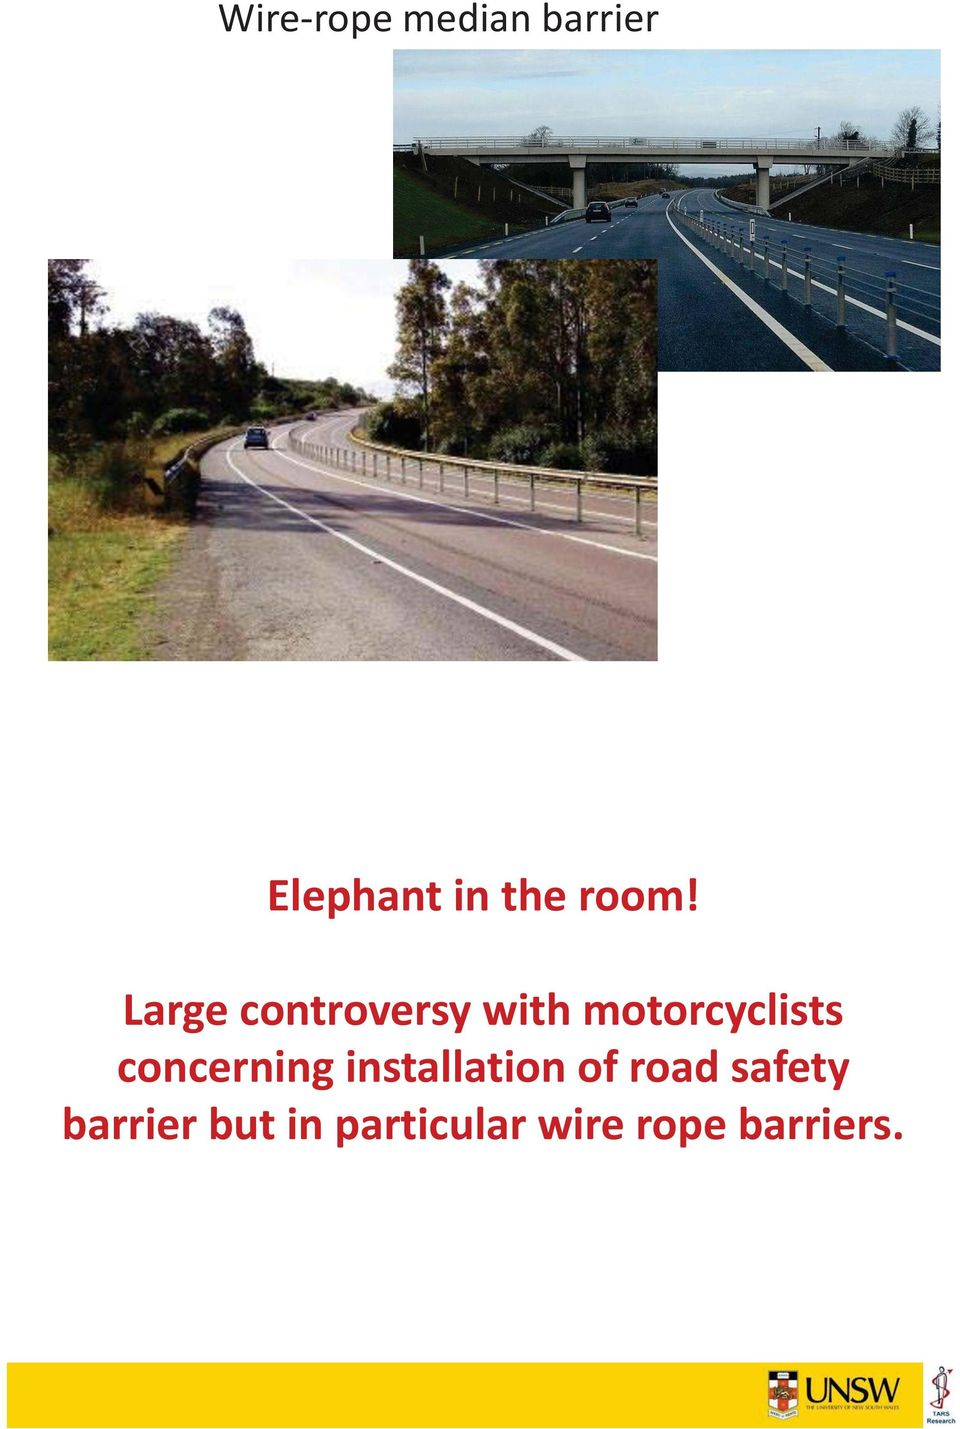 motorcyclists concerning installation of